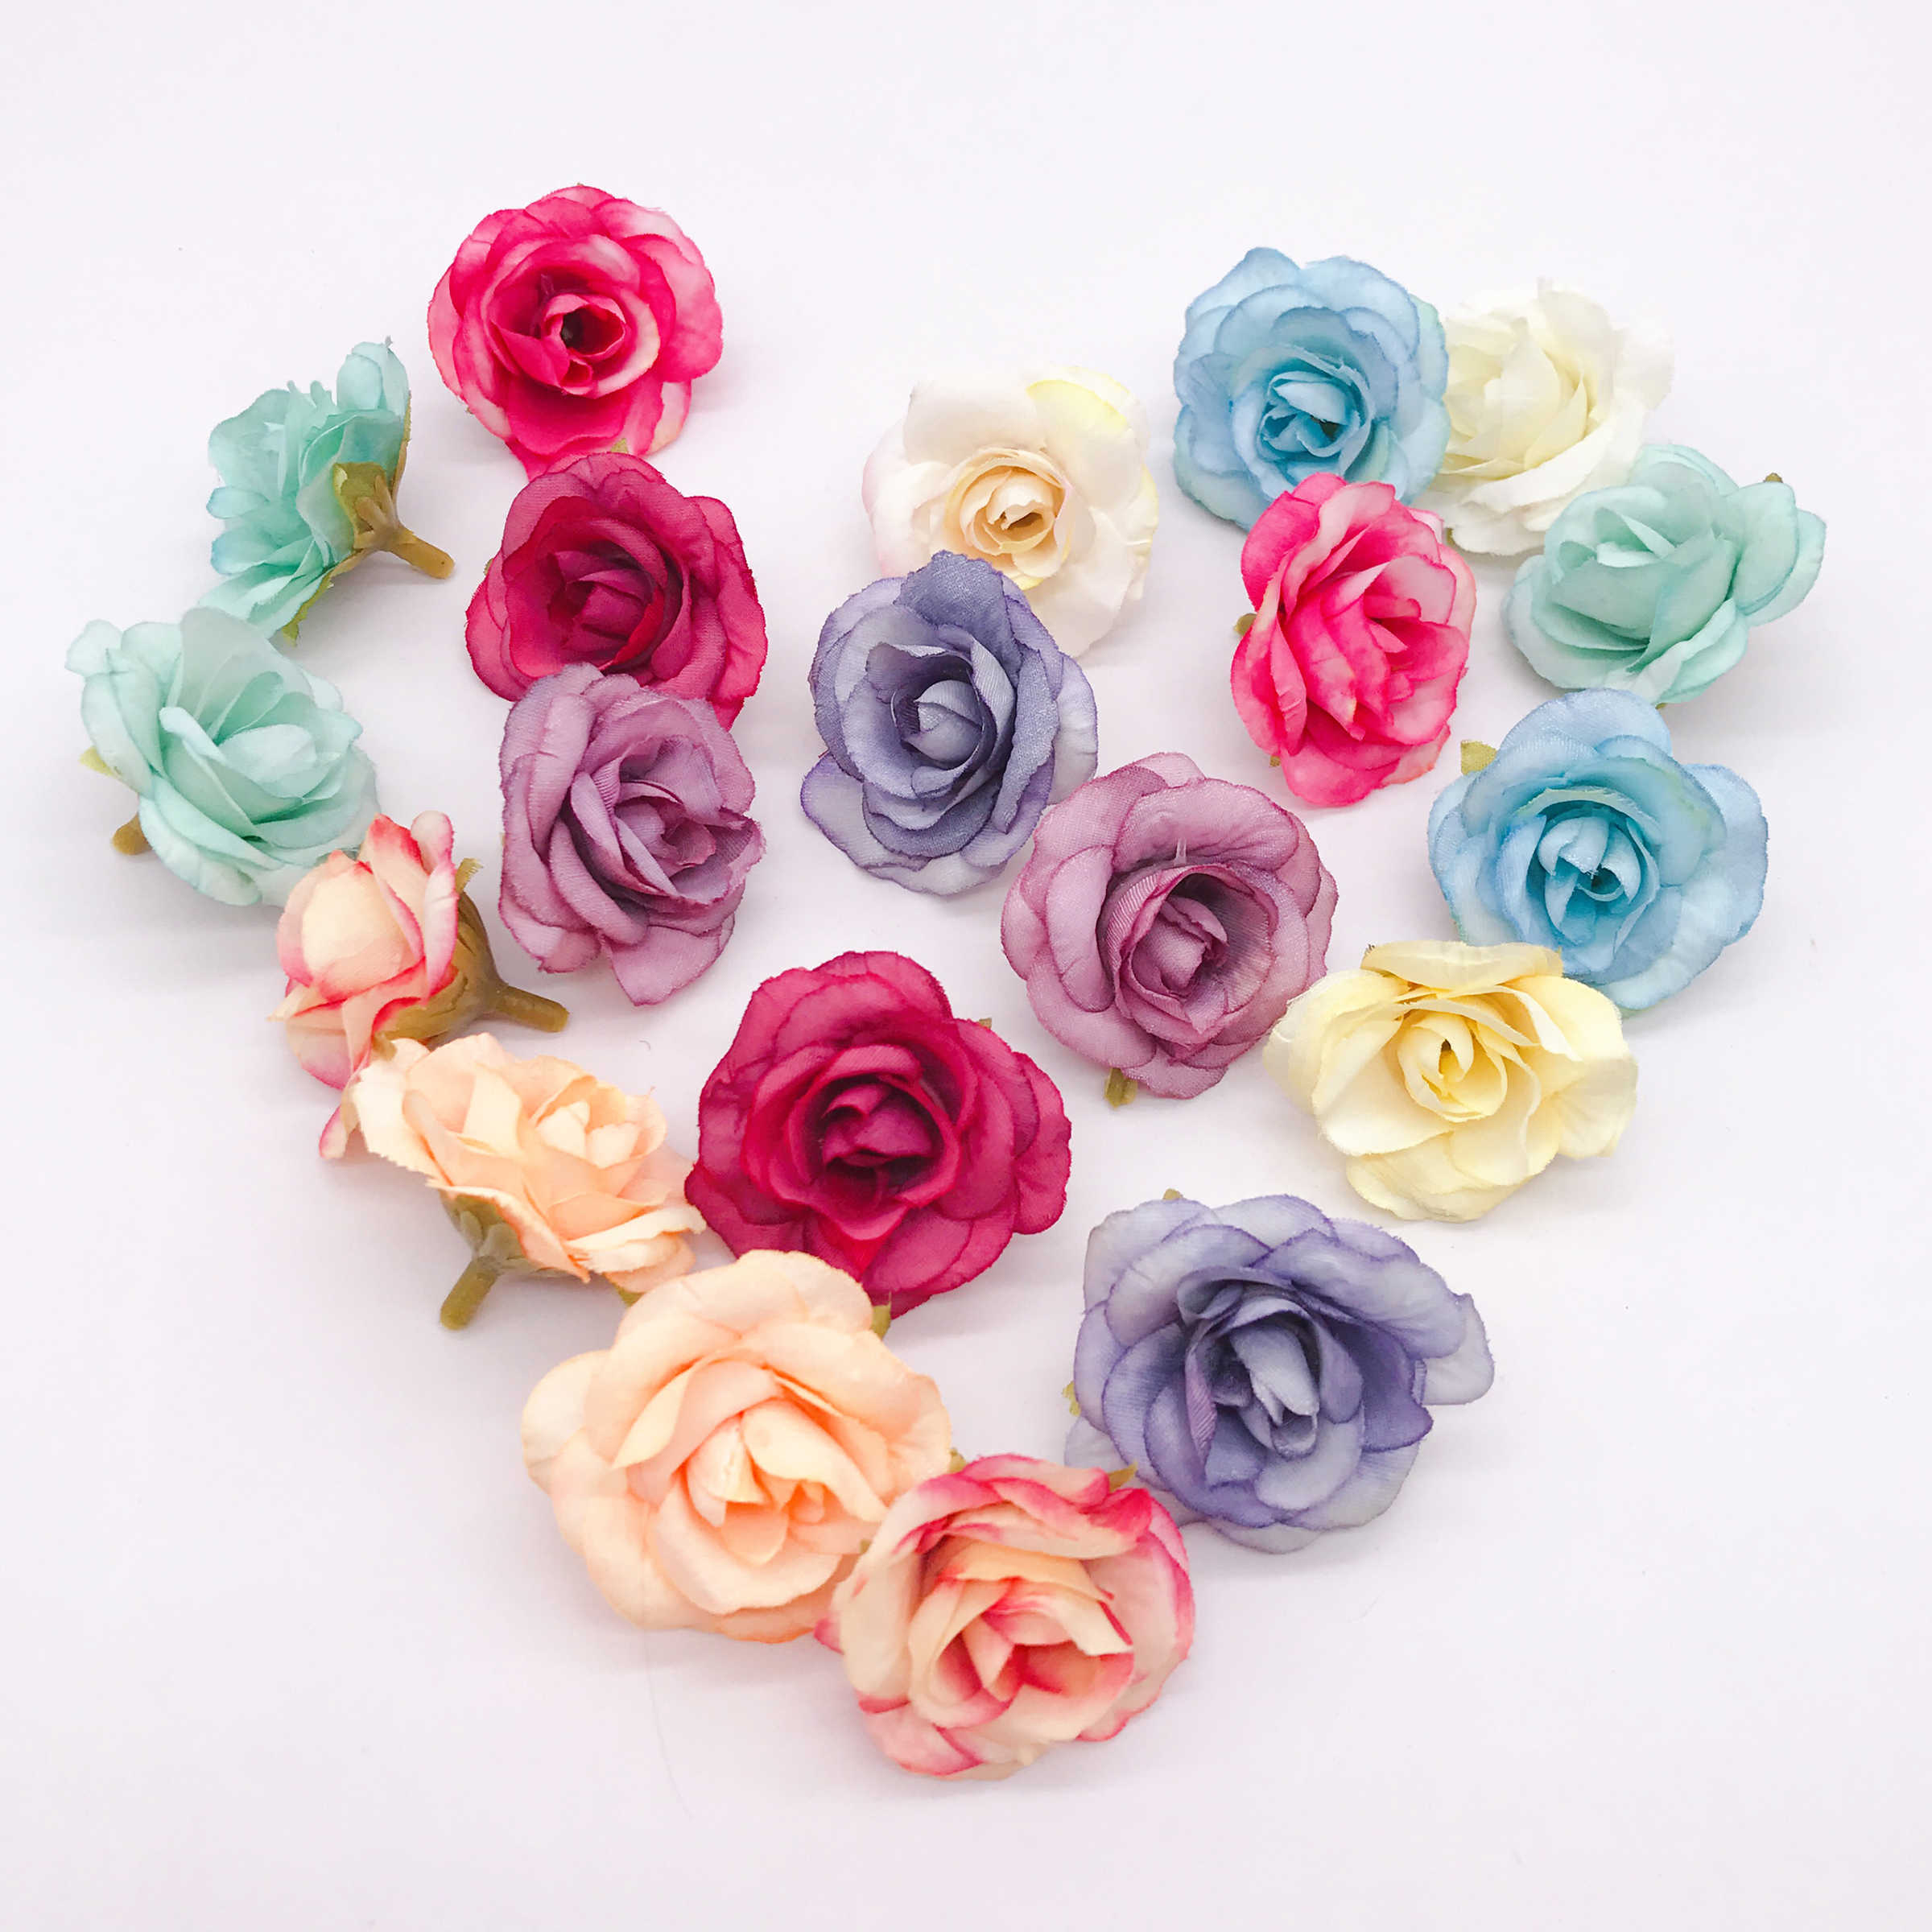 New 10pcs artificial flower 4cm silk rose flower head wedding party home decoration DIY wreath scrapbook gift box craft